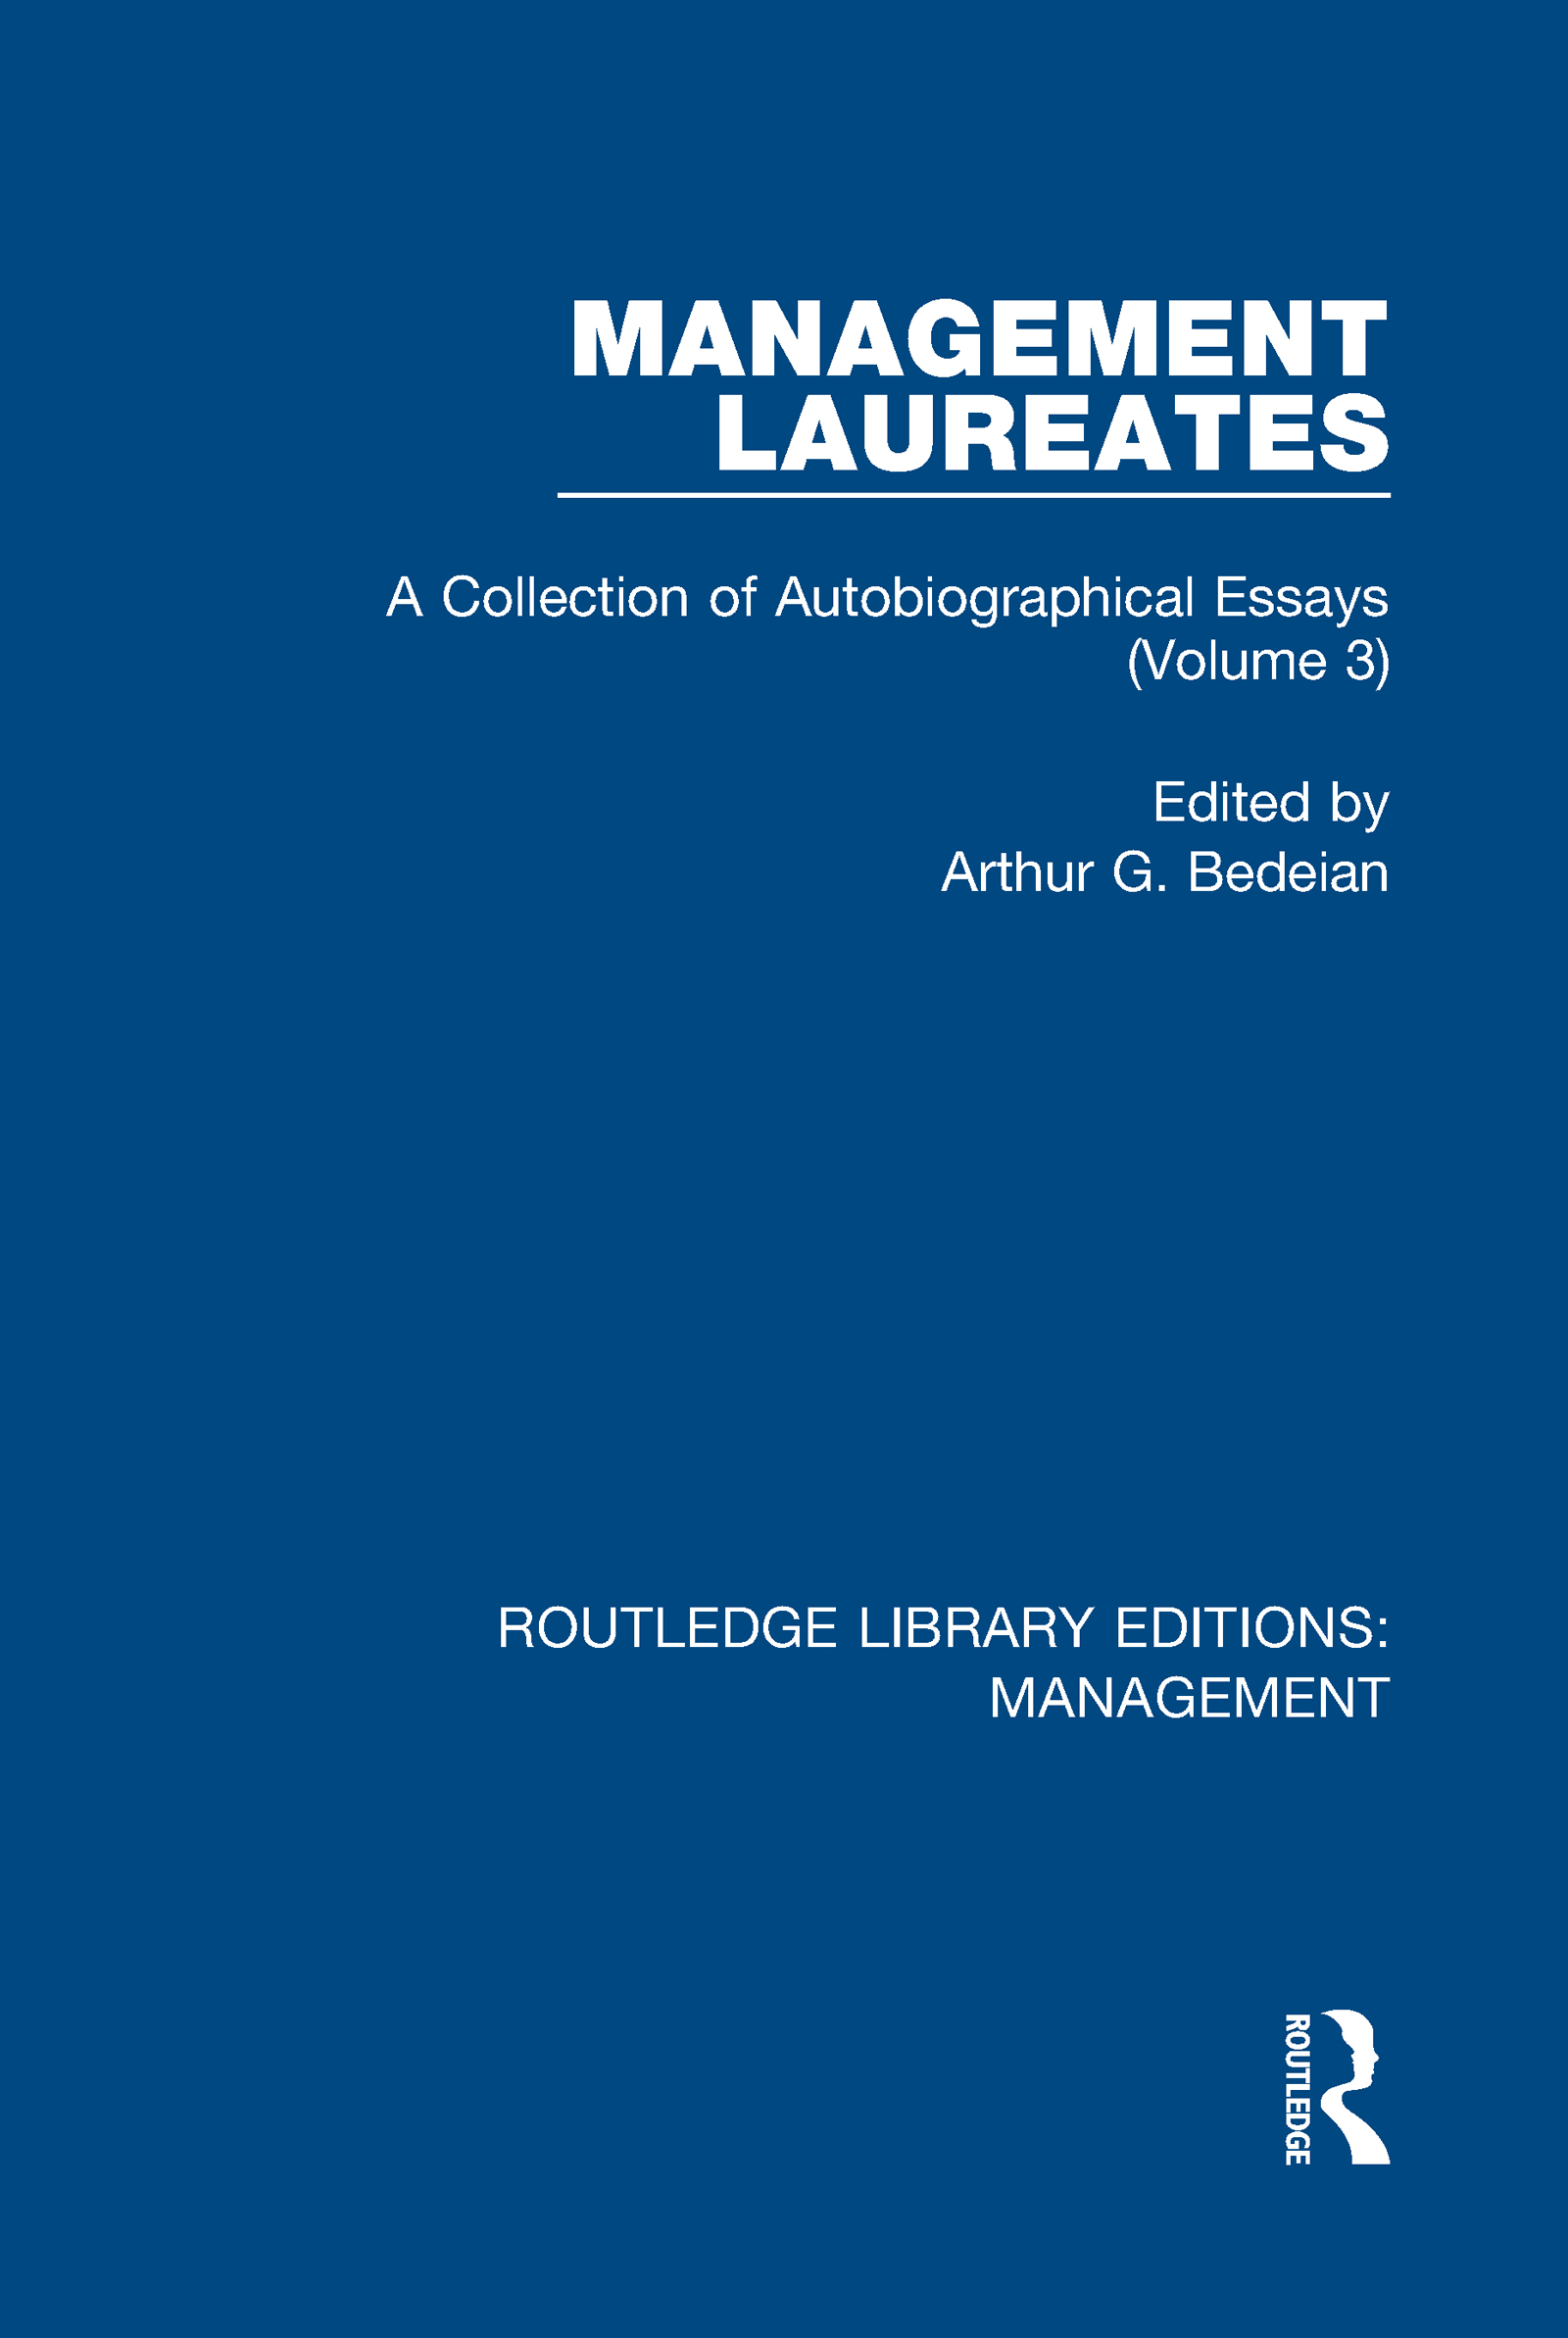 Management Laureates: A Collection of Autobiographical Essays (Volume 3) book cover